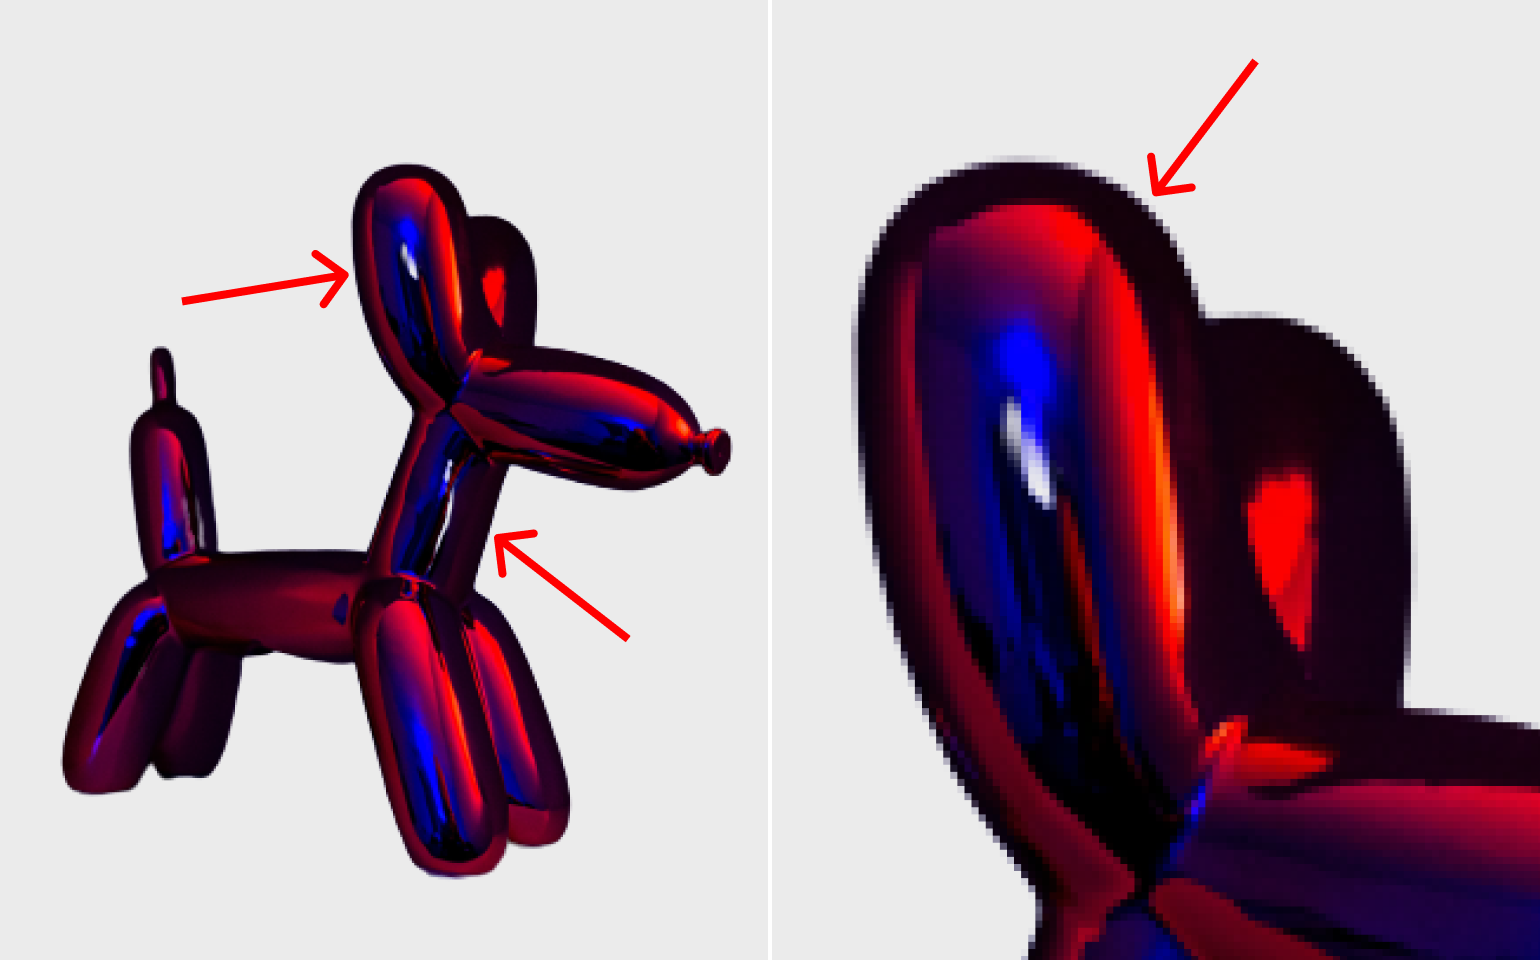 Collage with cut background, red neon balloon doggo toy in half a turn in the dark and its ear close up the result by Remove.bg